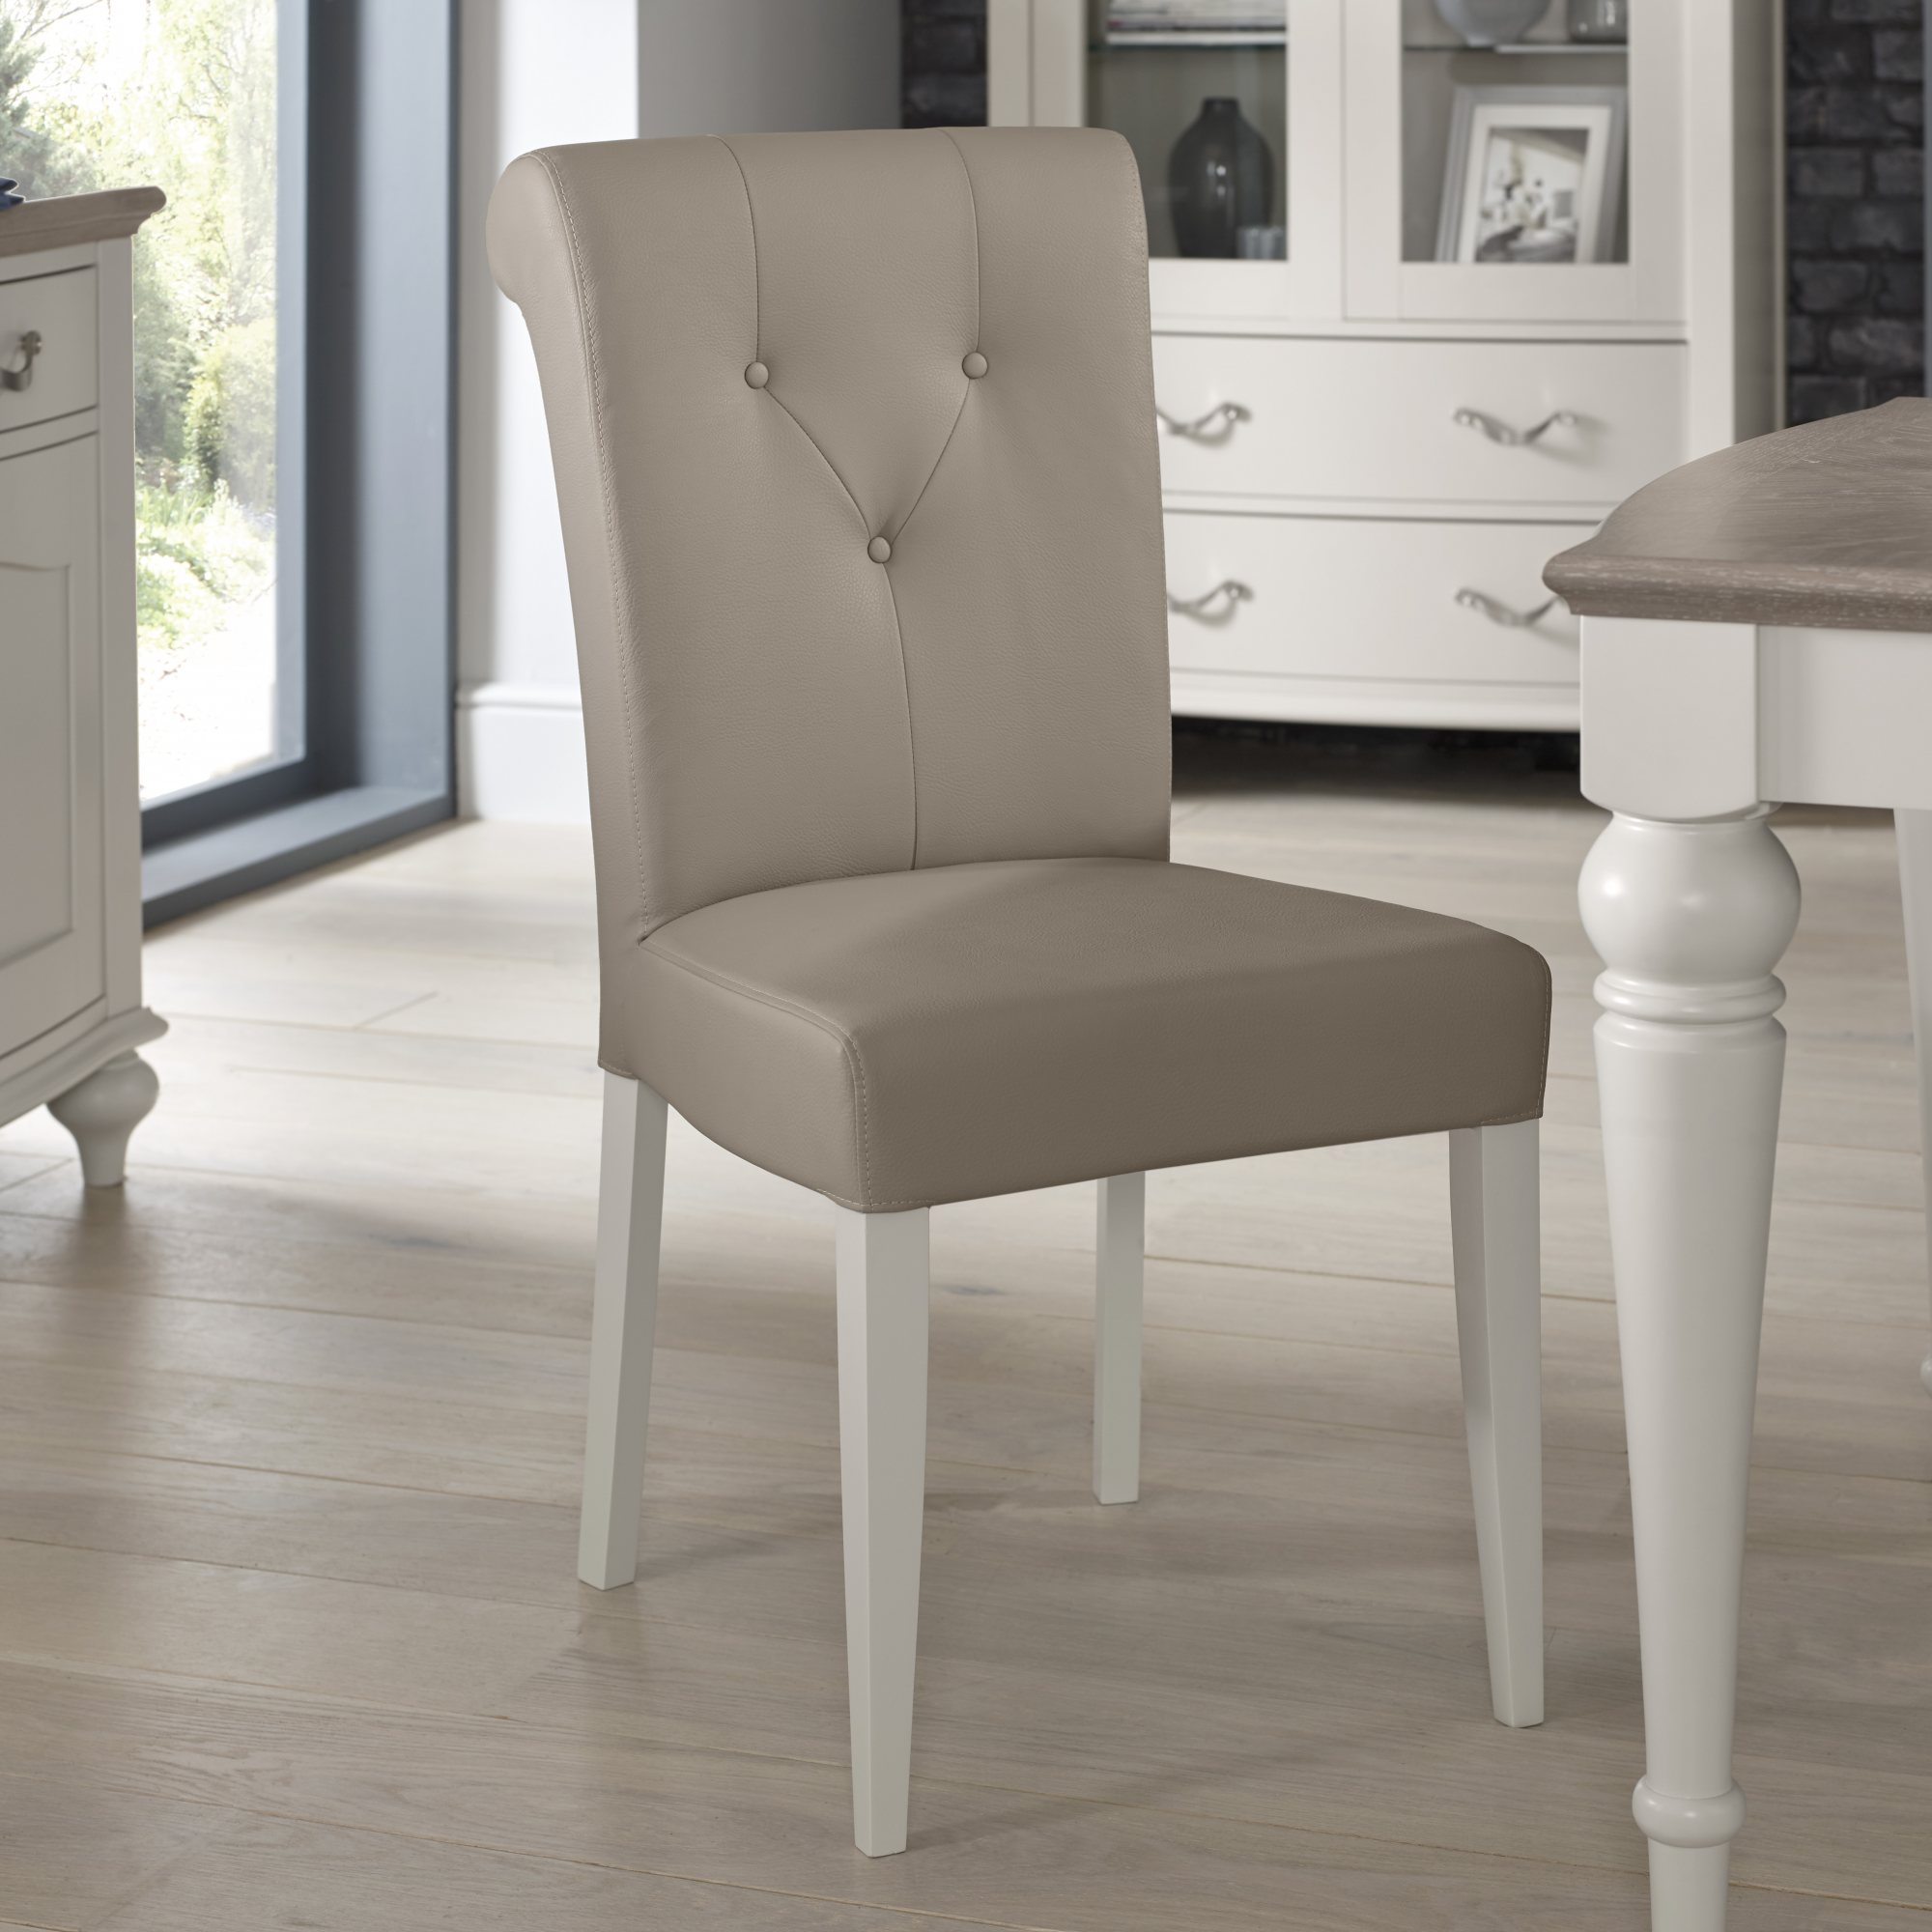 MONICA GREY UPHOLSTERED DINING CHAIR. – L46cm x D62cm x H95cm